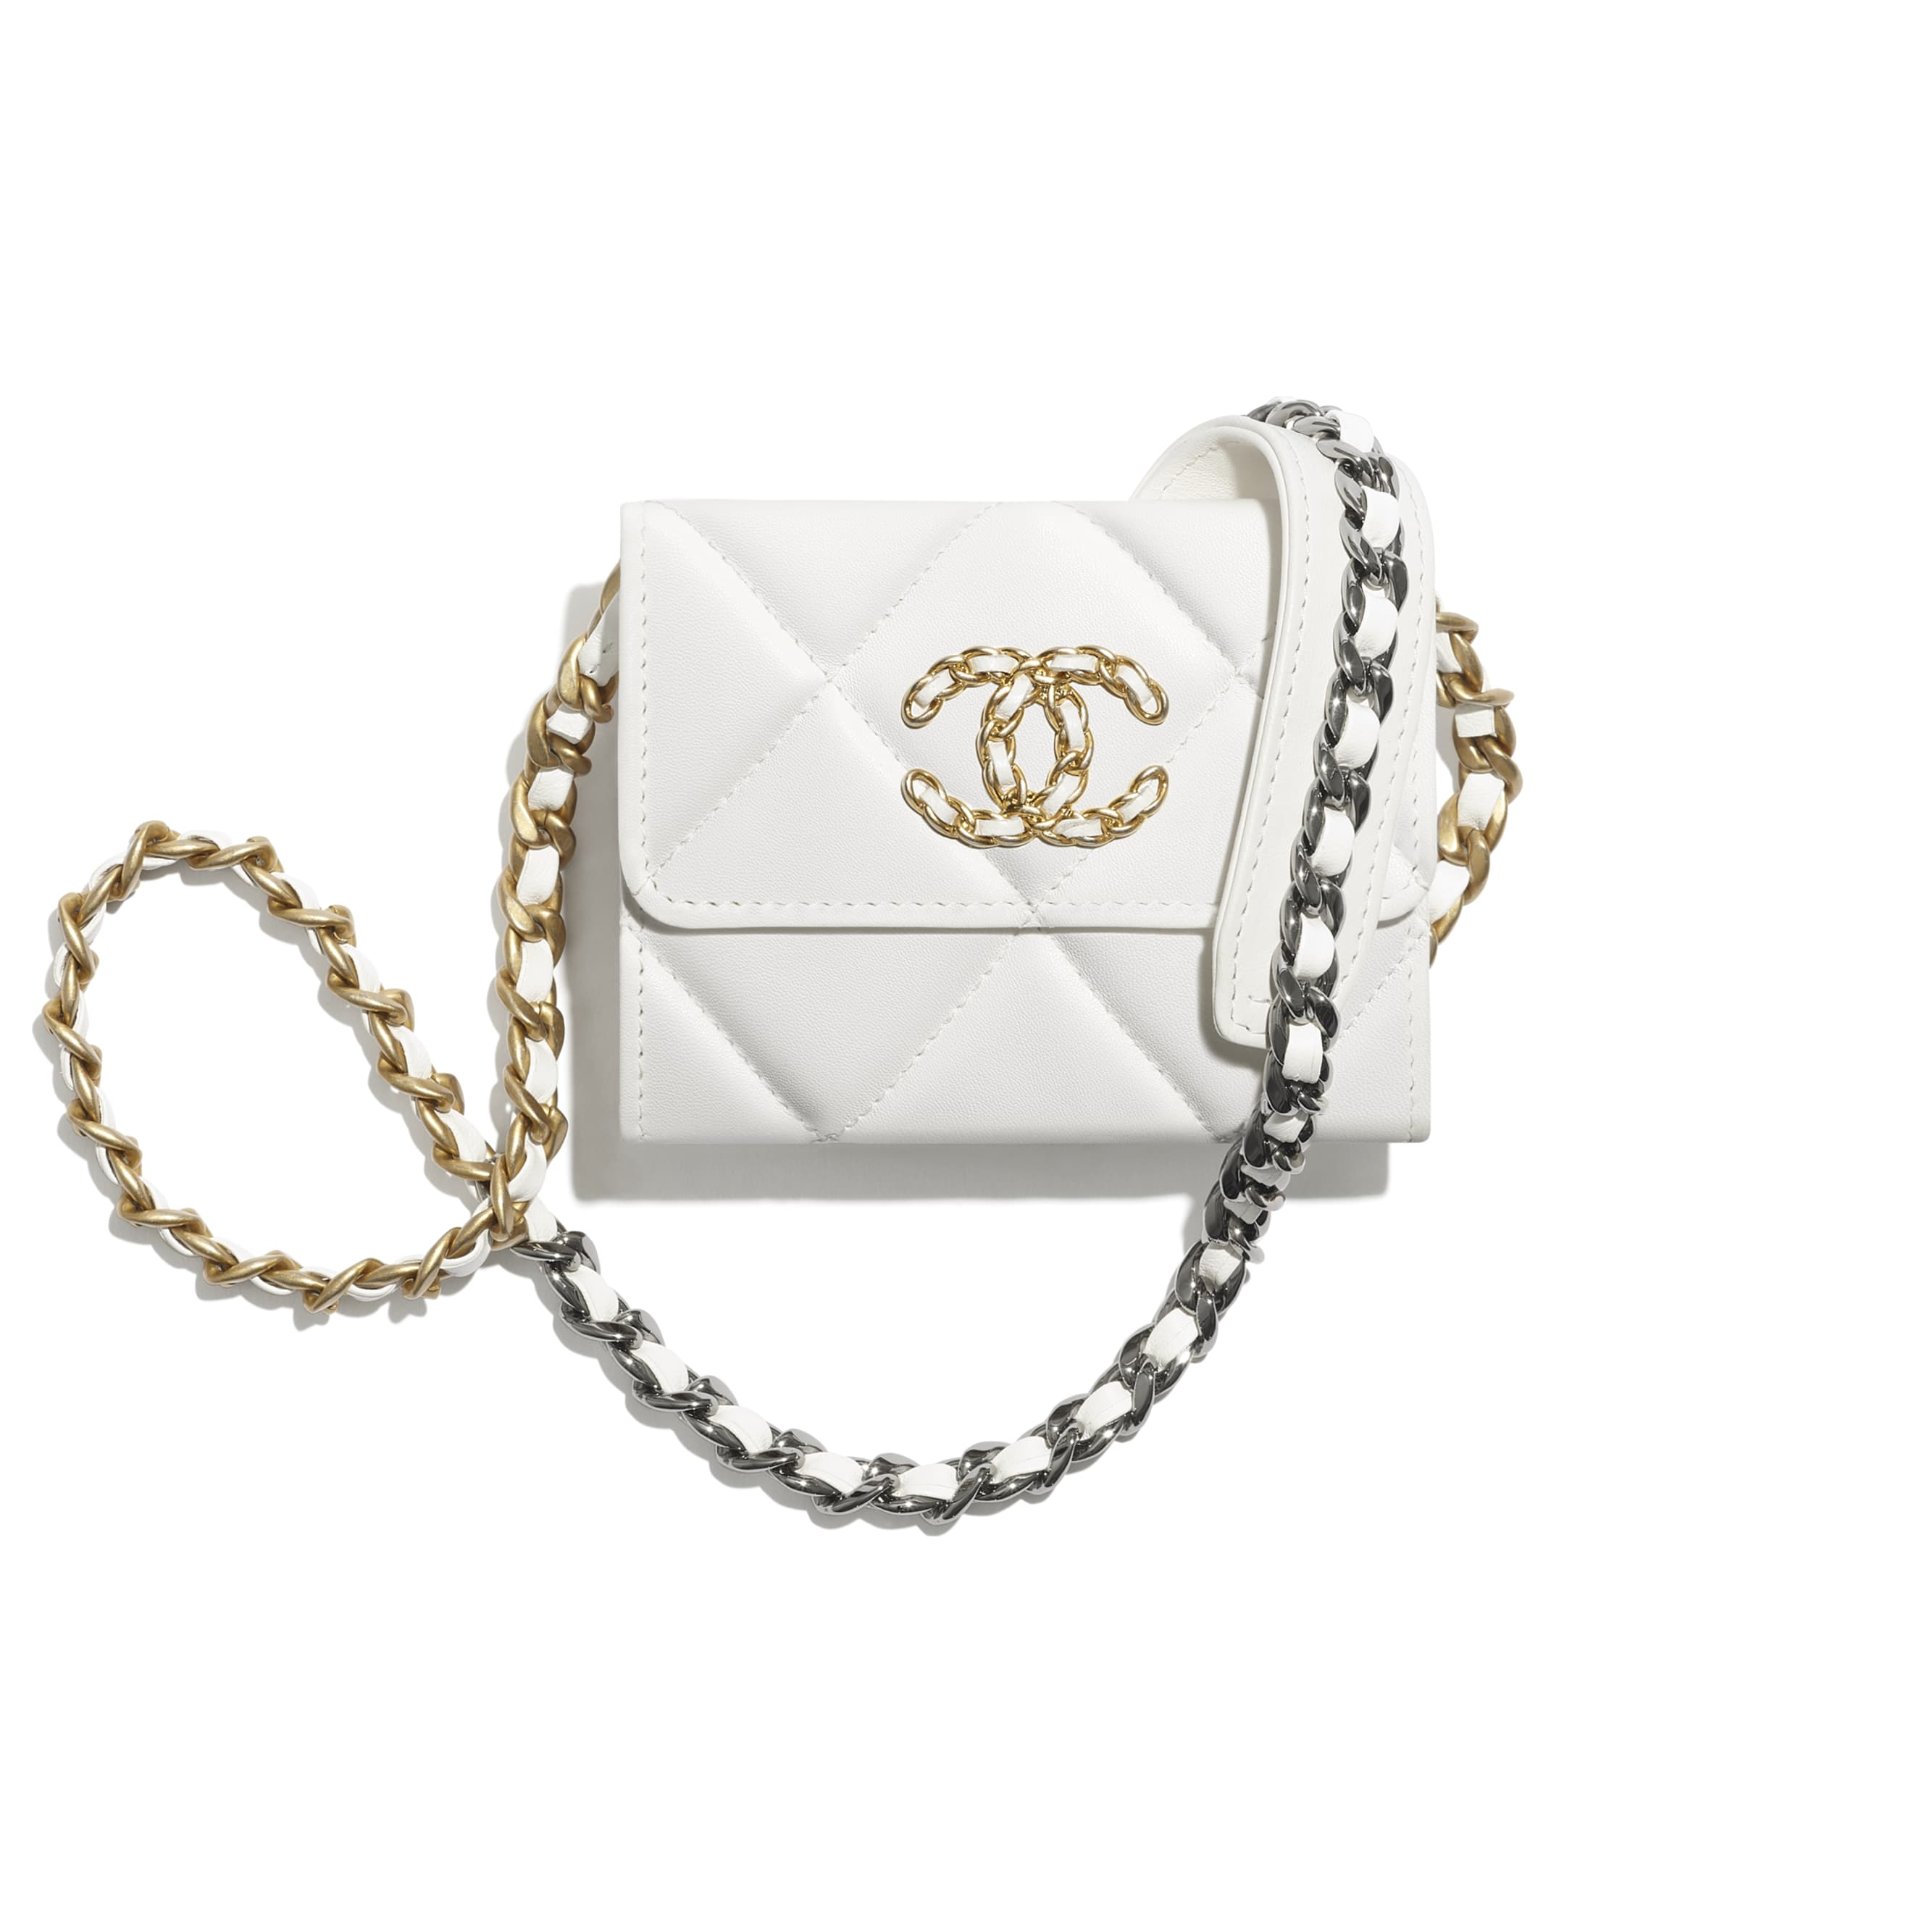 CHANEL 19 Flap Coin Purse with Chain - White - Lambskin, Gold-Tone, Silver-Tone & Ruthenium-Finish Metal - CHANEL - Default view - see standard sized version